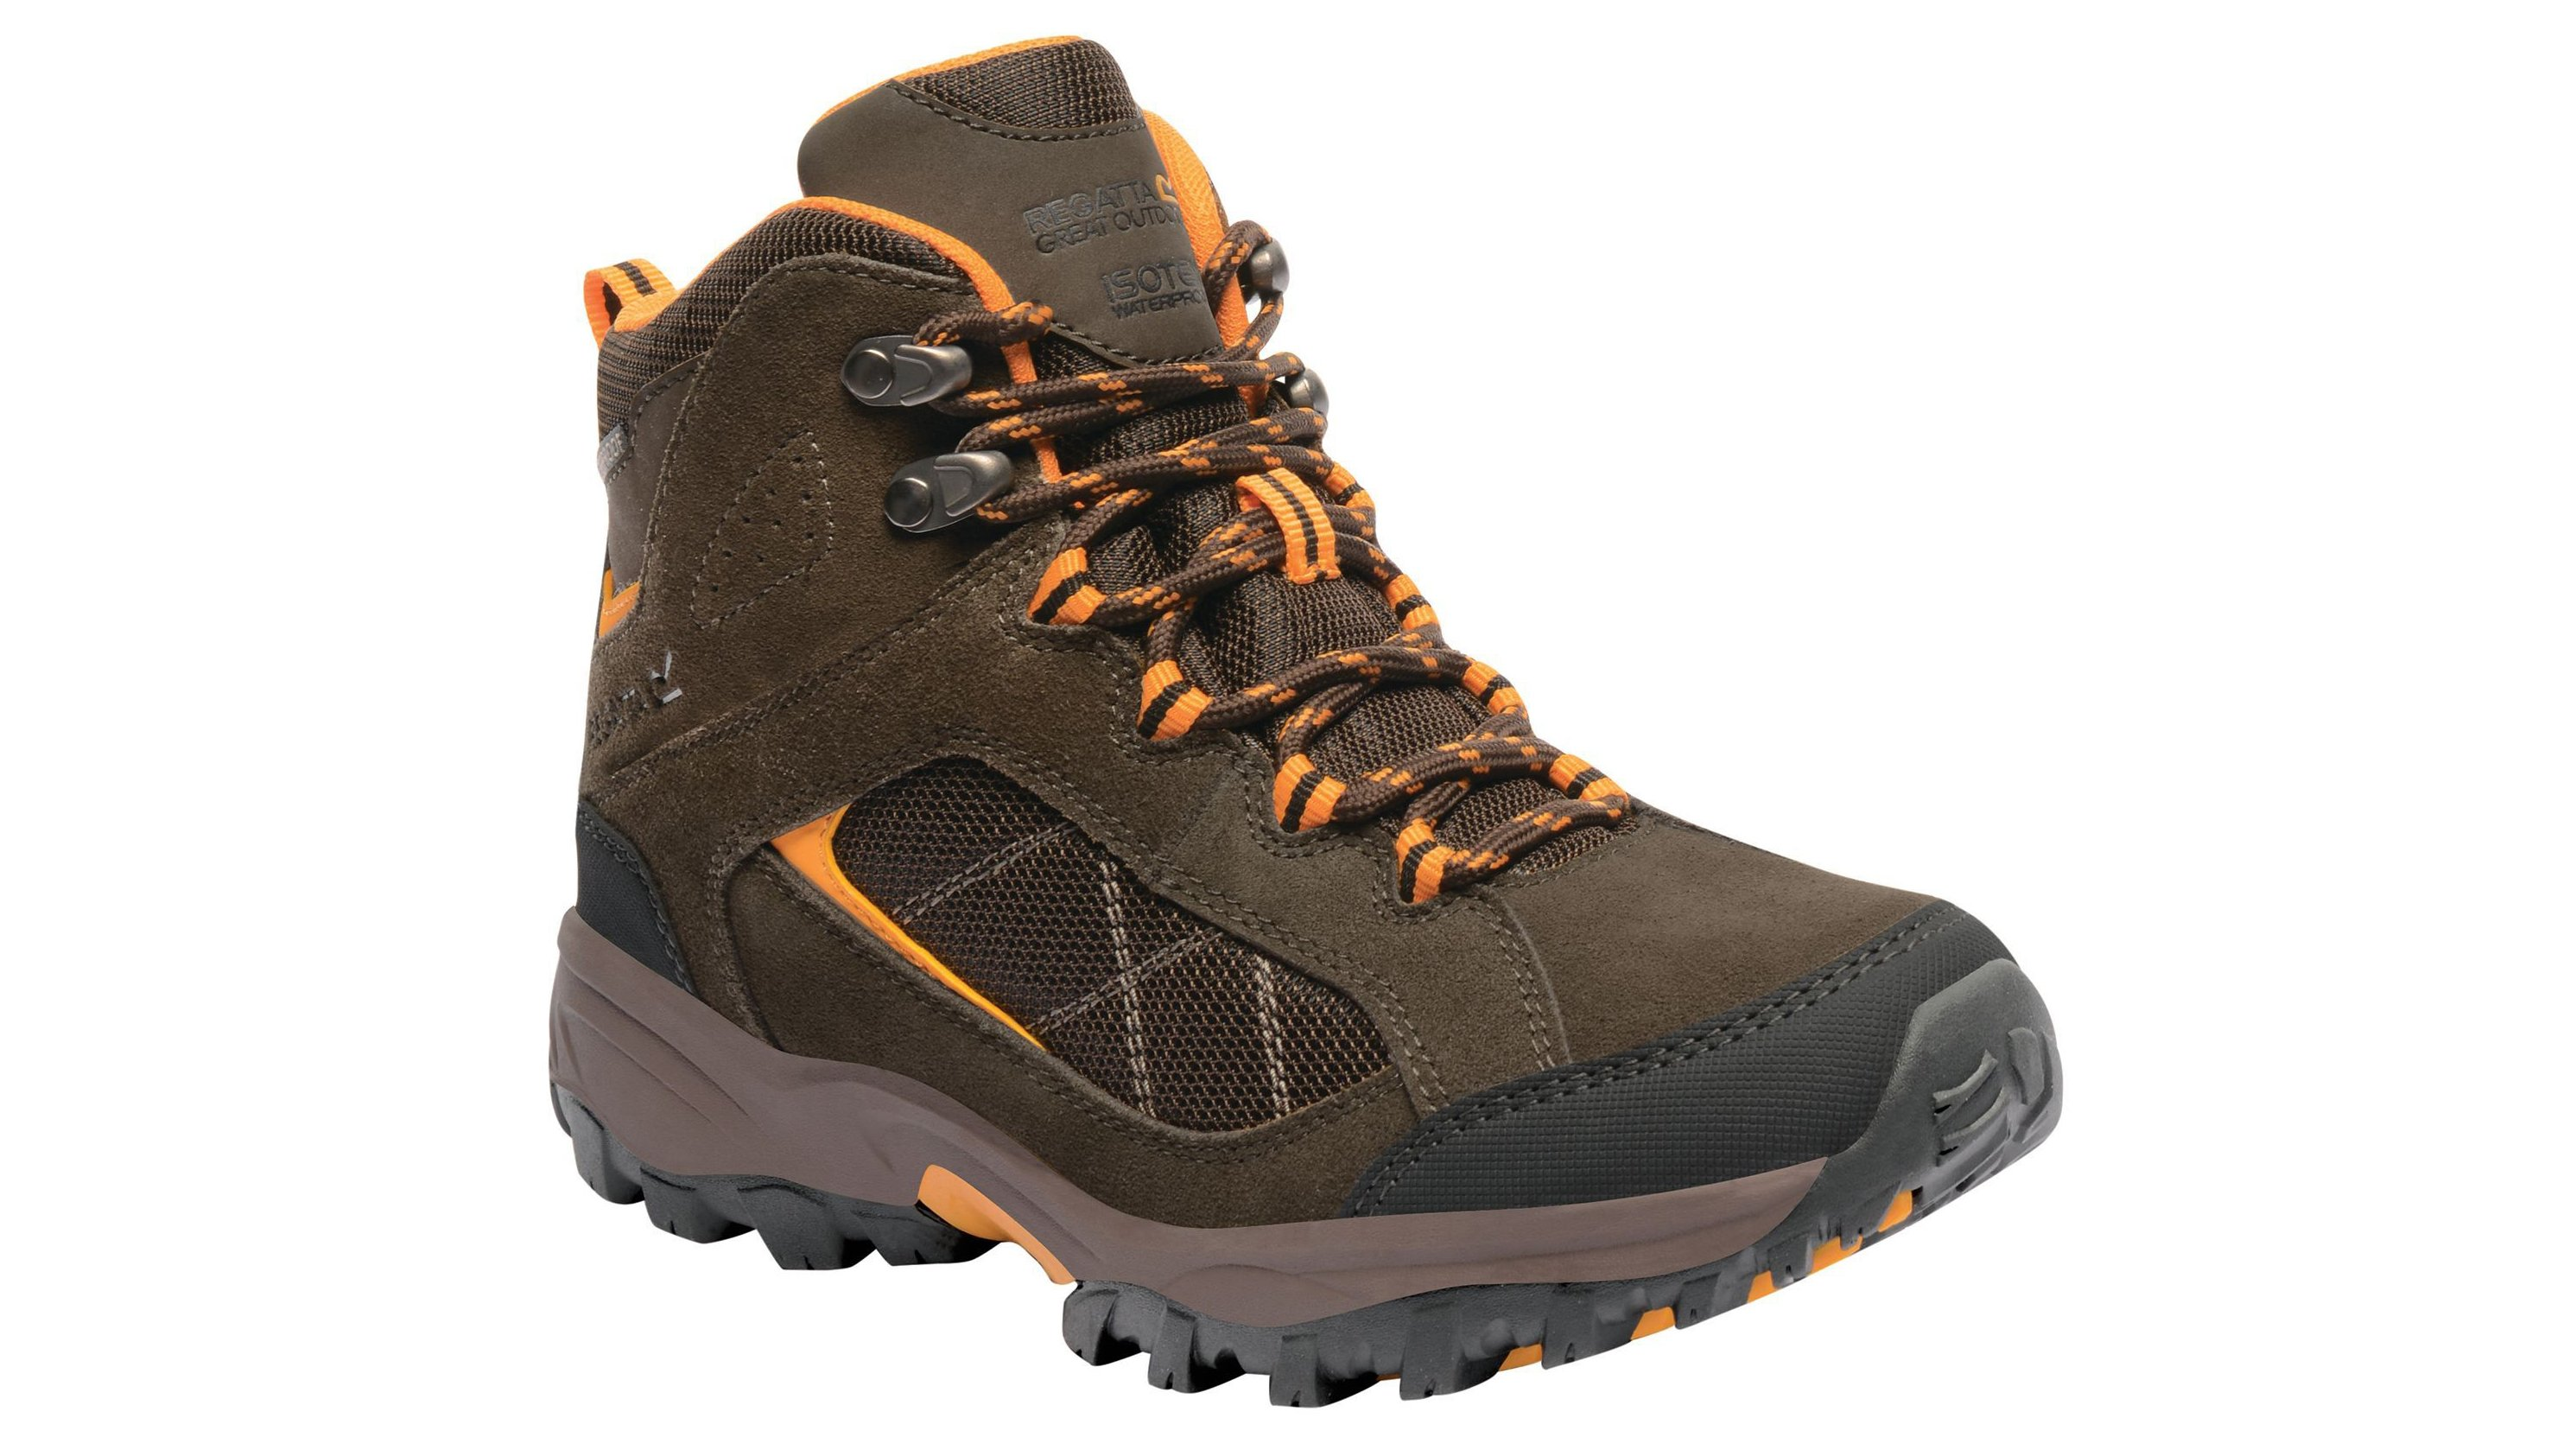 Best Hiking Boots 2020 The Best Boots To Help You Go The Extra Mile Expert Reviews If the cube has insufficient charges remaining, nothing happens. best hiking boots 2020 the best boots